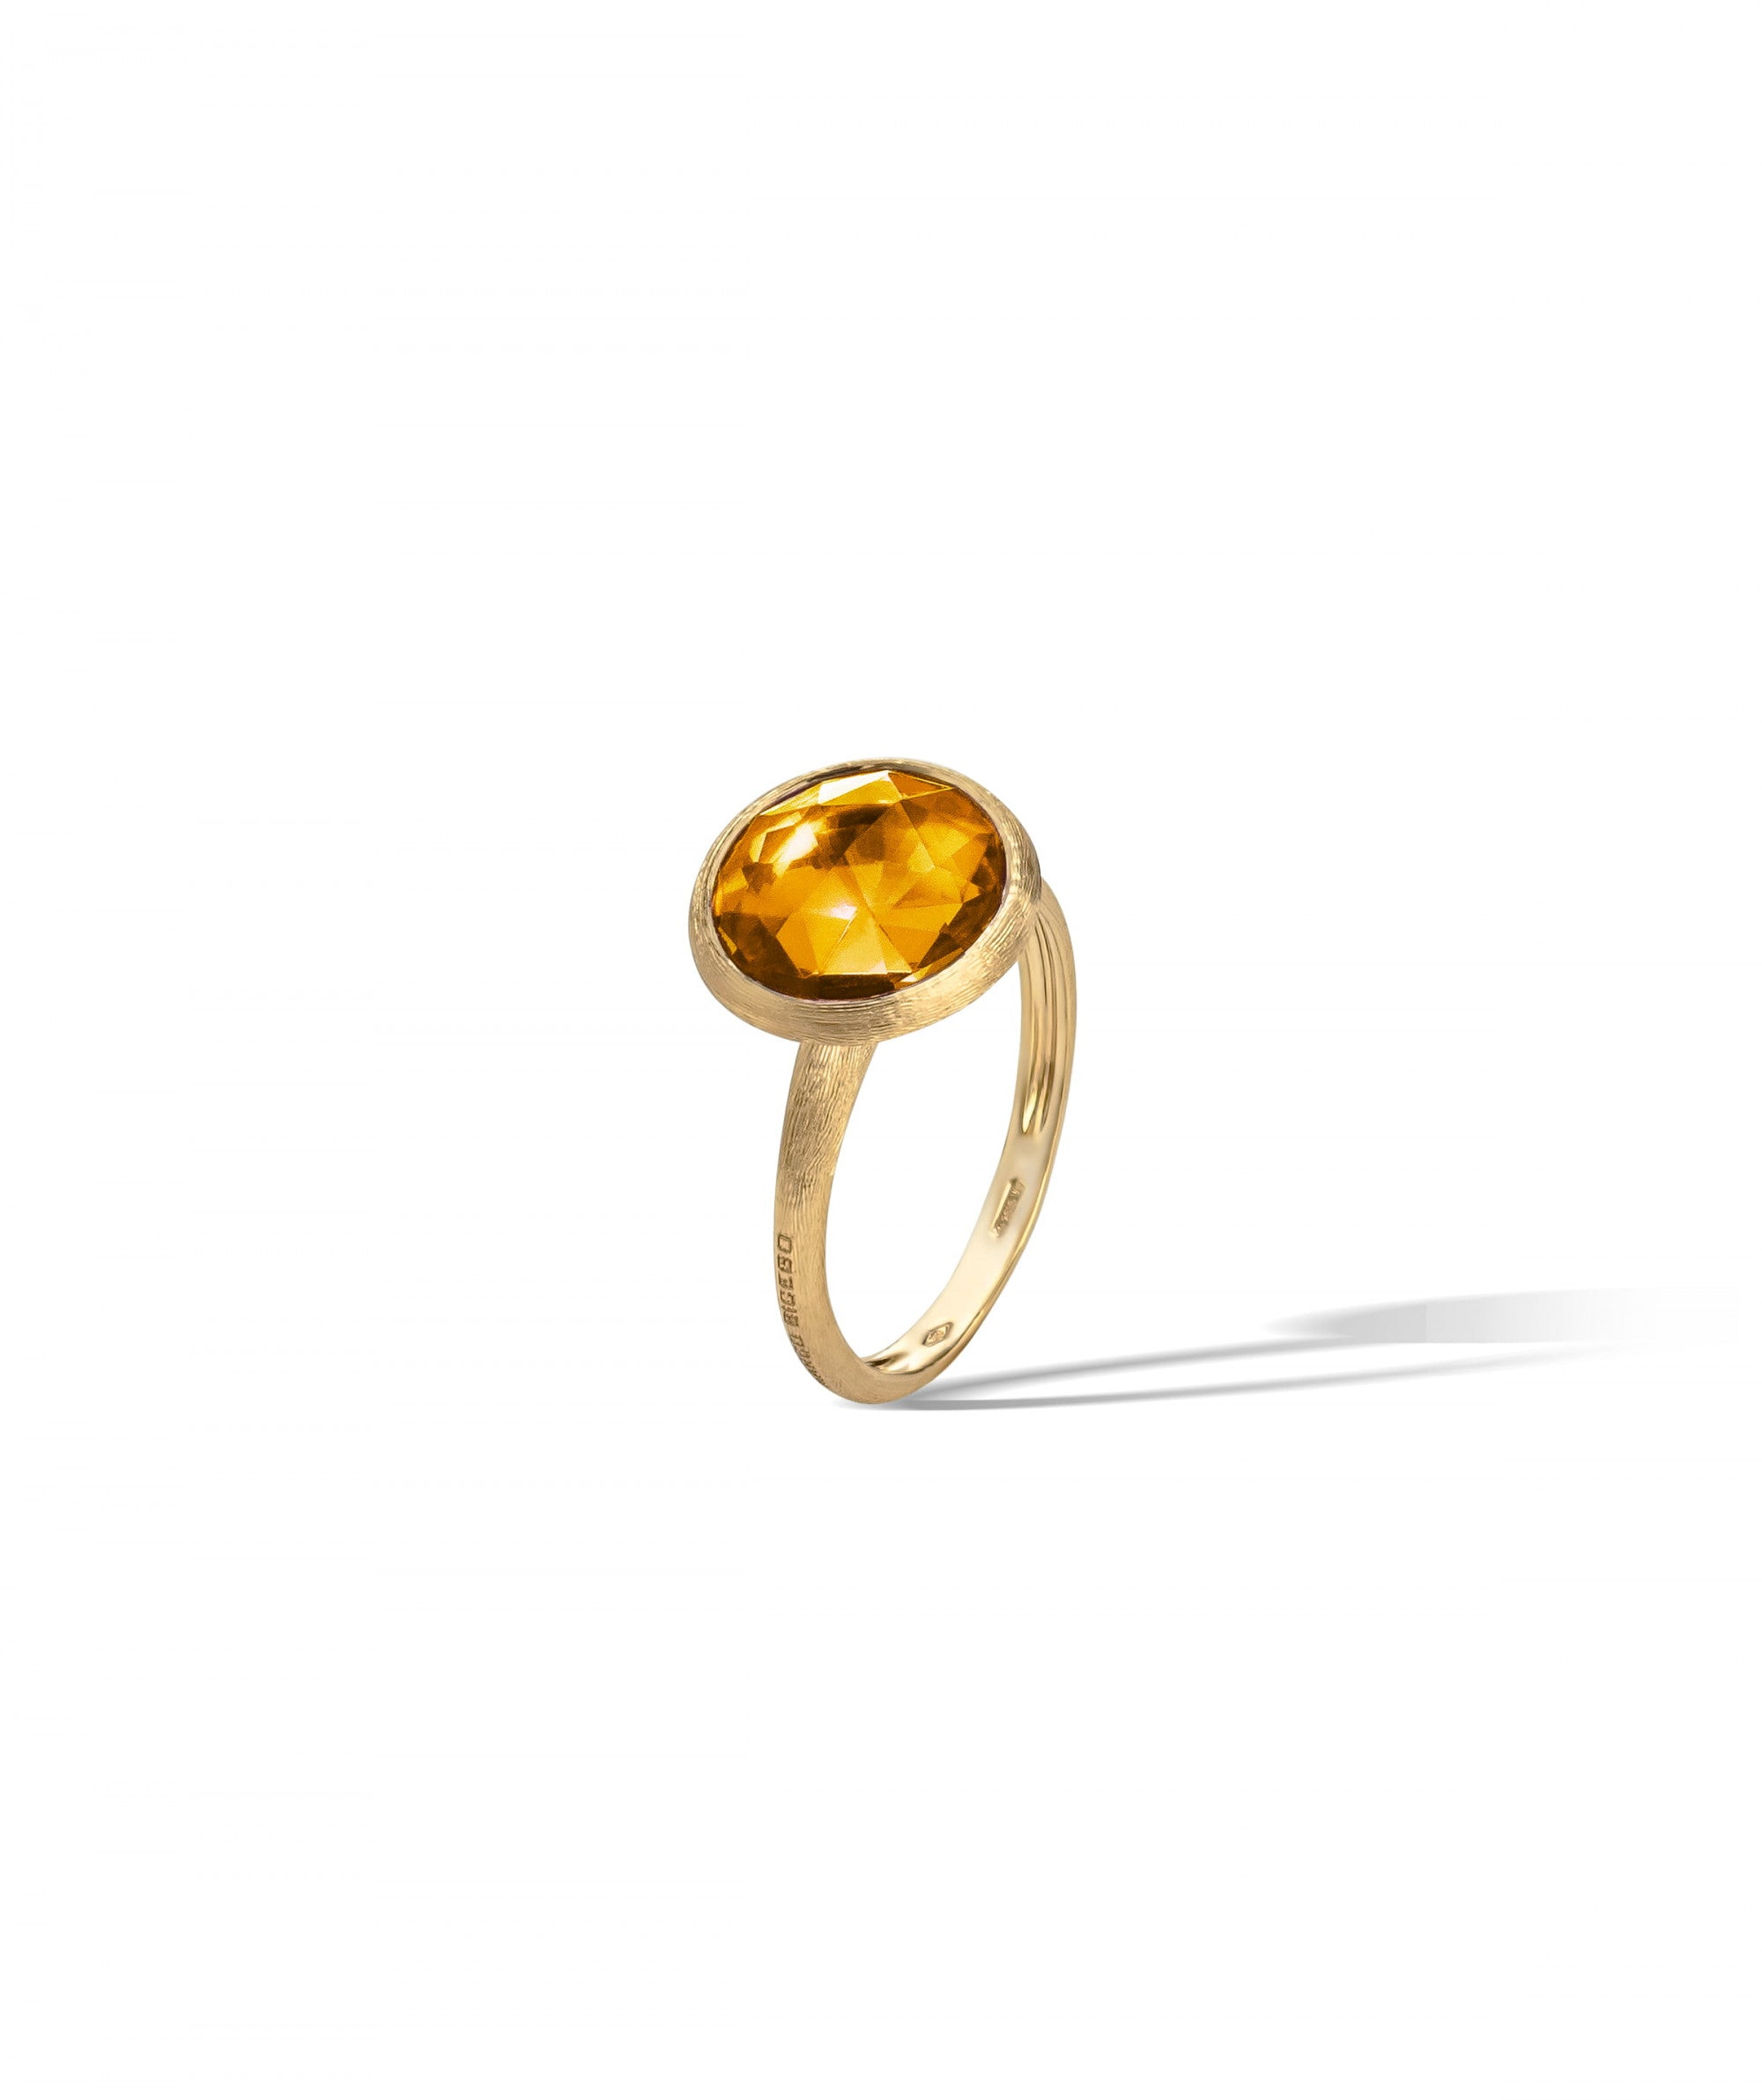 Jaipur Colour Ring in 18k Yellow Gold with Citrine Quartz Large - Orsini Jewellers NZ